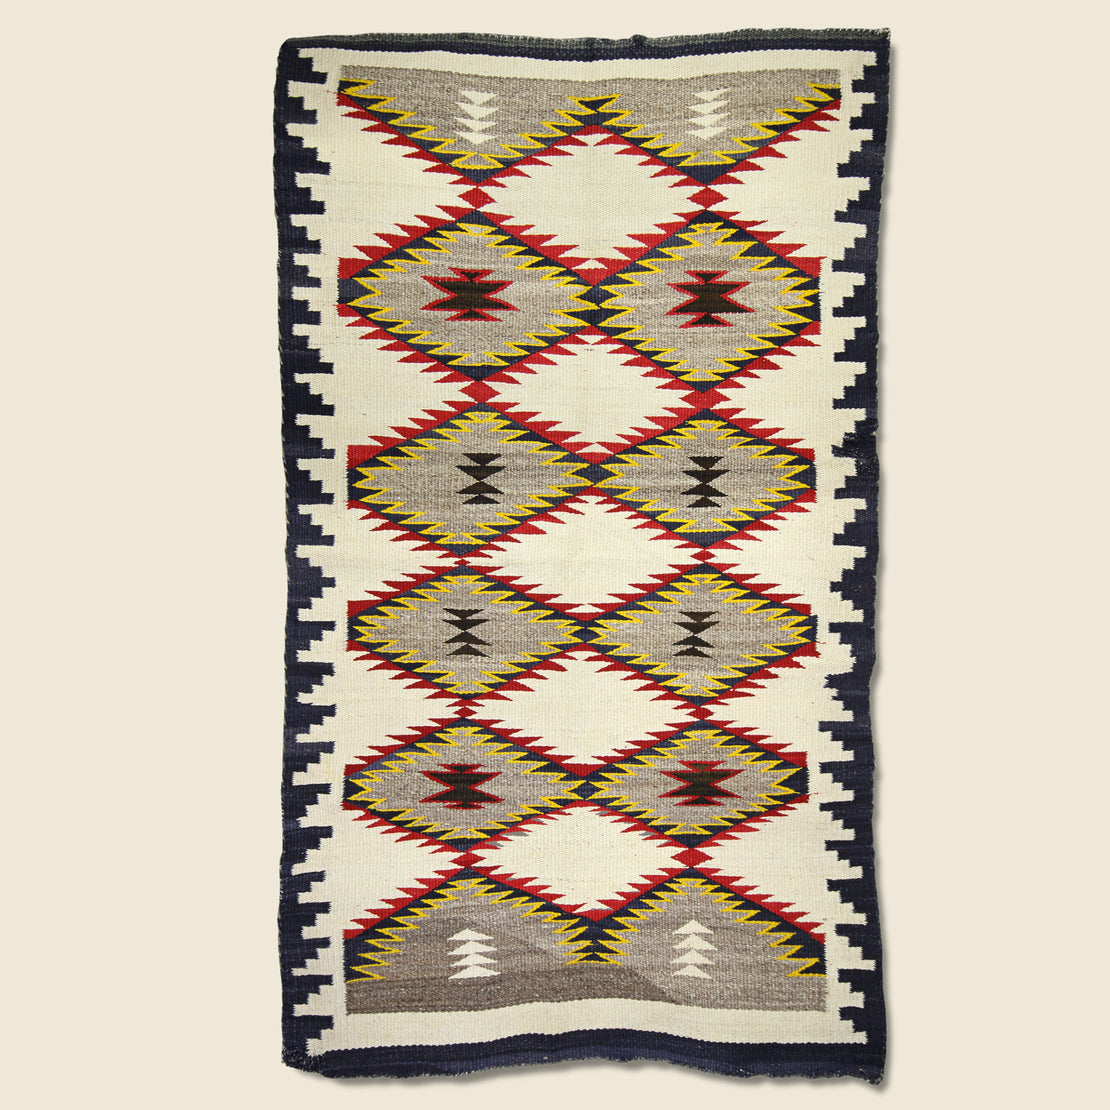 Vintage Vintage Hand-Woven Navajo Rug  - Yellow, Red, & Navy Eye Dazzler Pattern